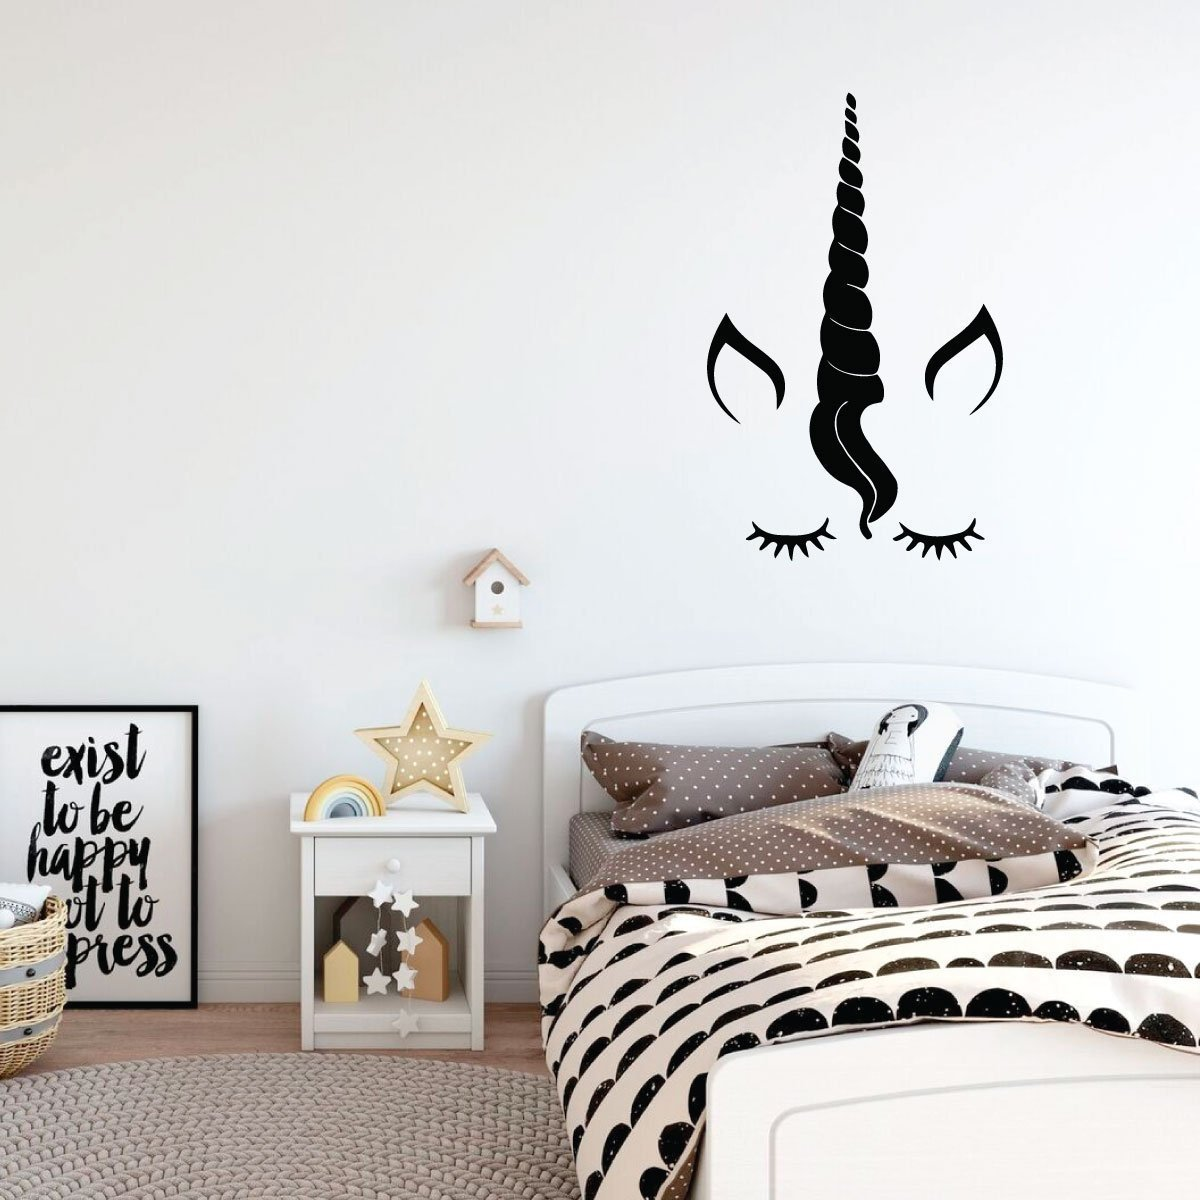 Unicorn Wall Decor - Eyelashes Vinyl Decal Personalized For Girl's Bedroom, Playroom or Bathroom - Kids Home Decorations